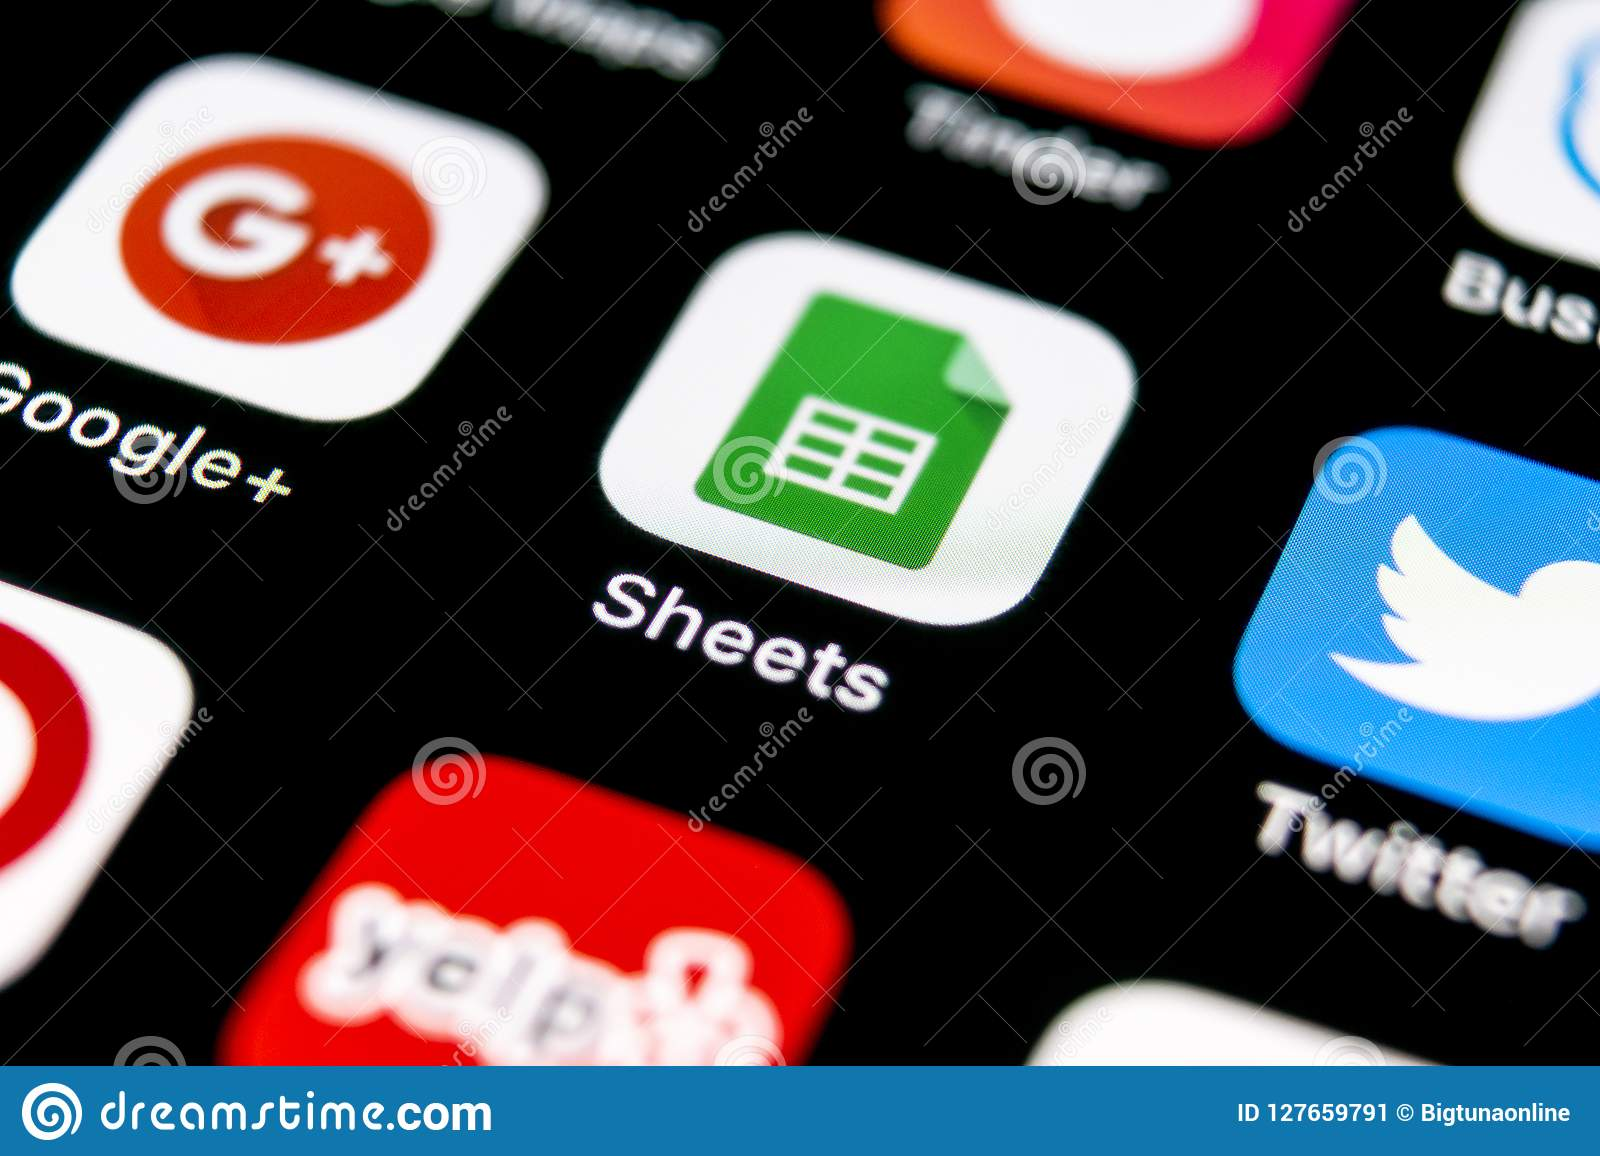 google sheets icon on apple iphone x smartphone screen close up